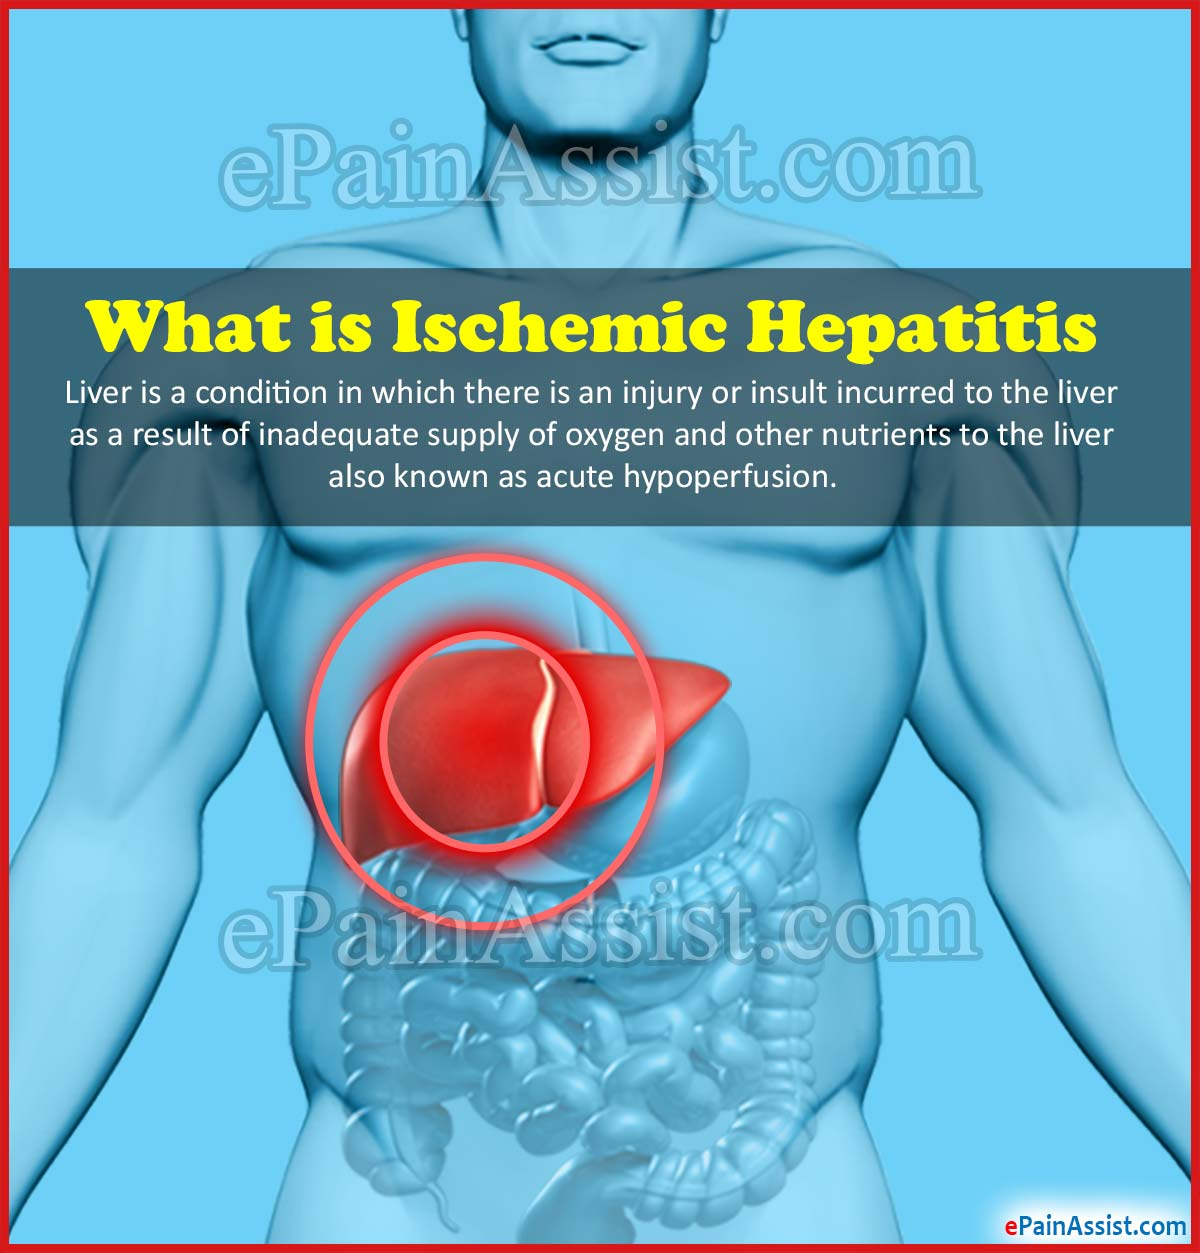 What is Ischemic Hepatitis or Shock Liver?